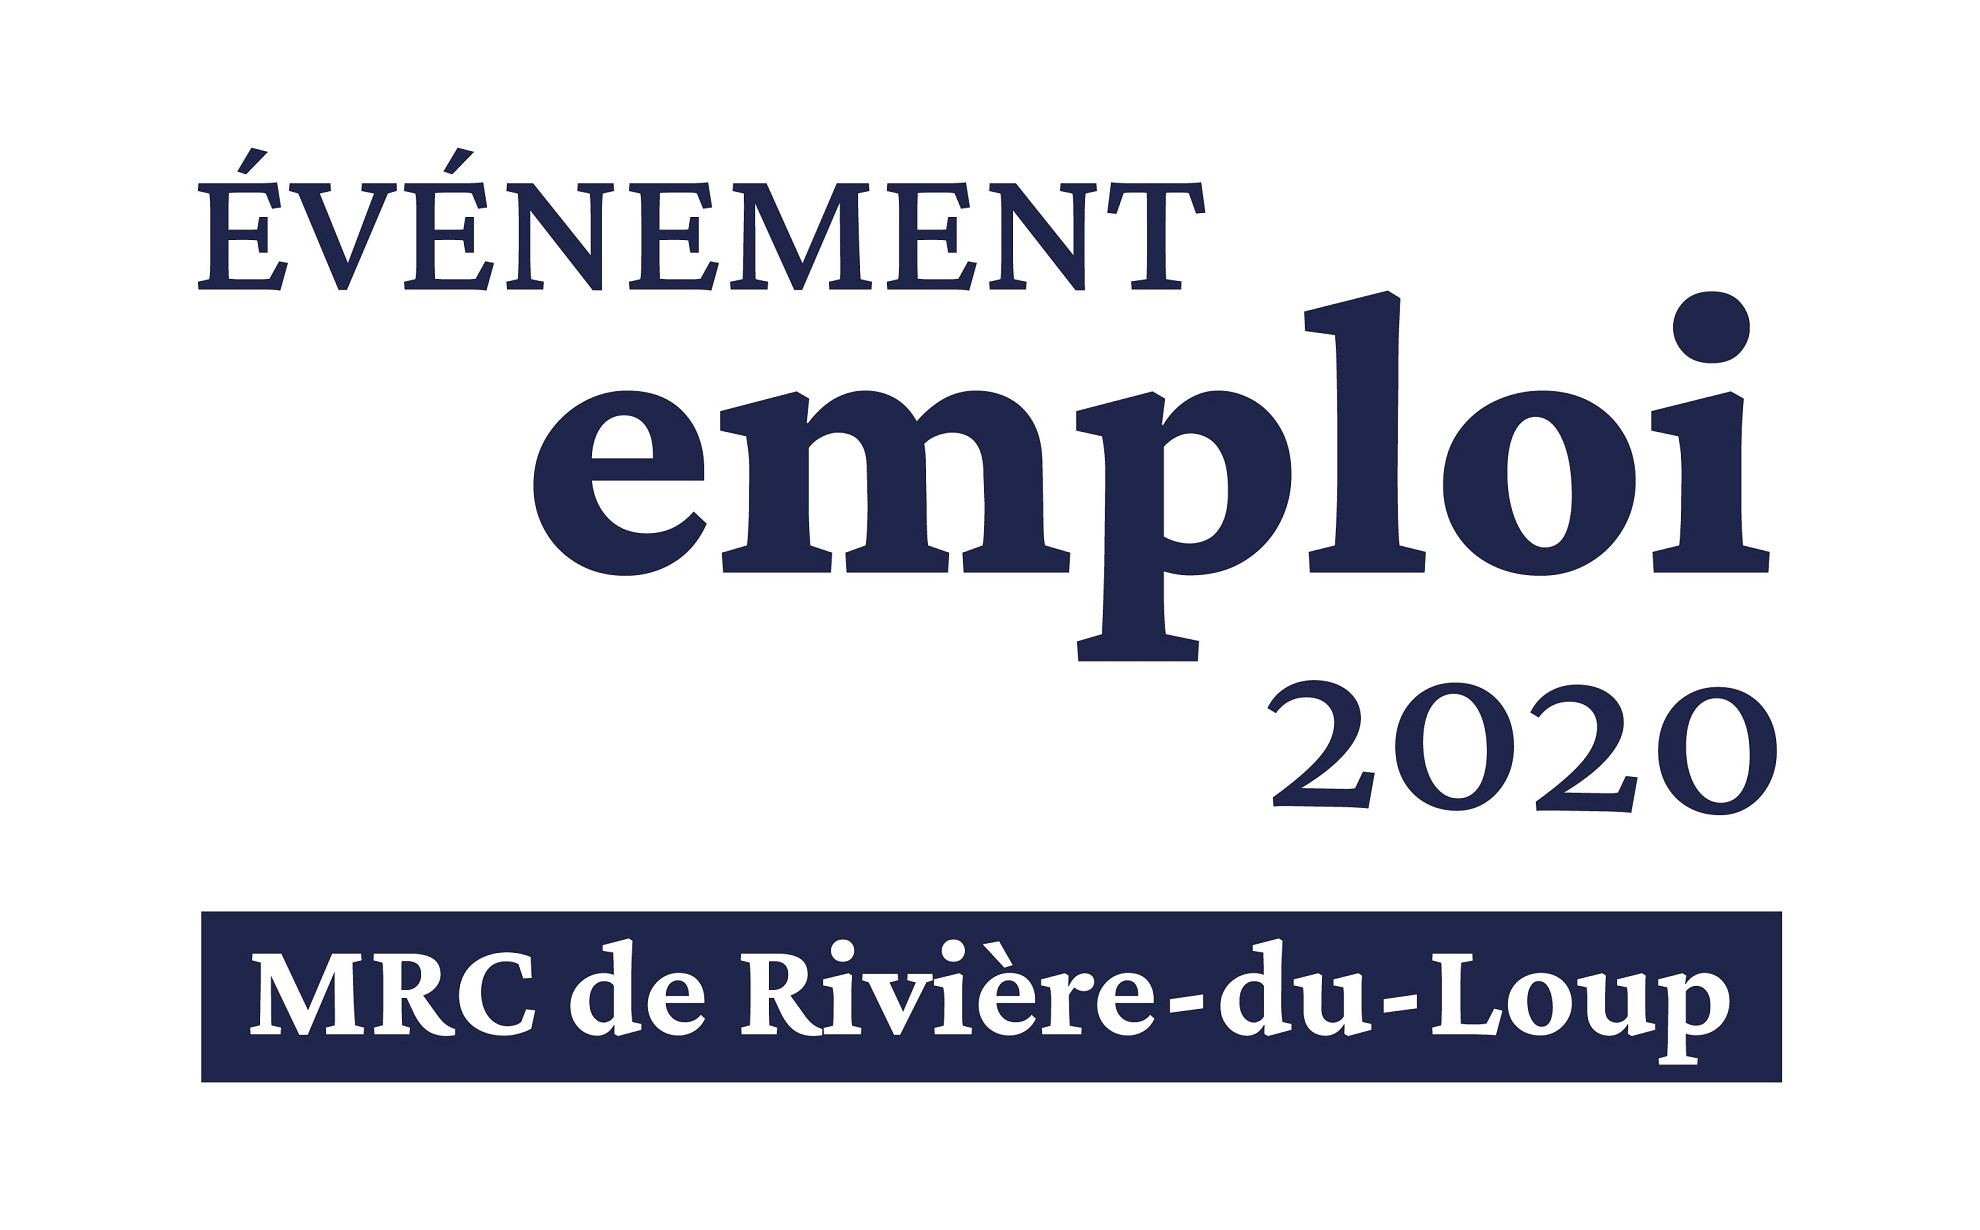 Signature Evenement Emploi 2020